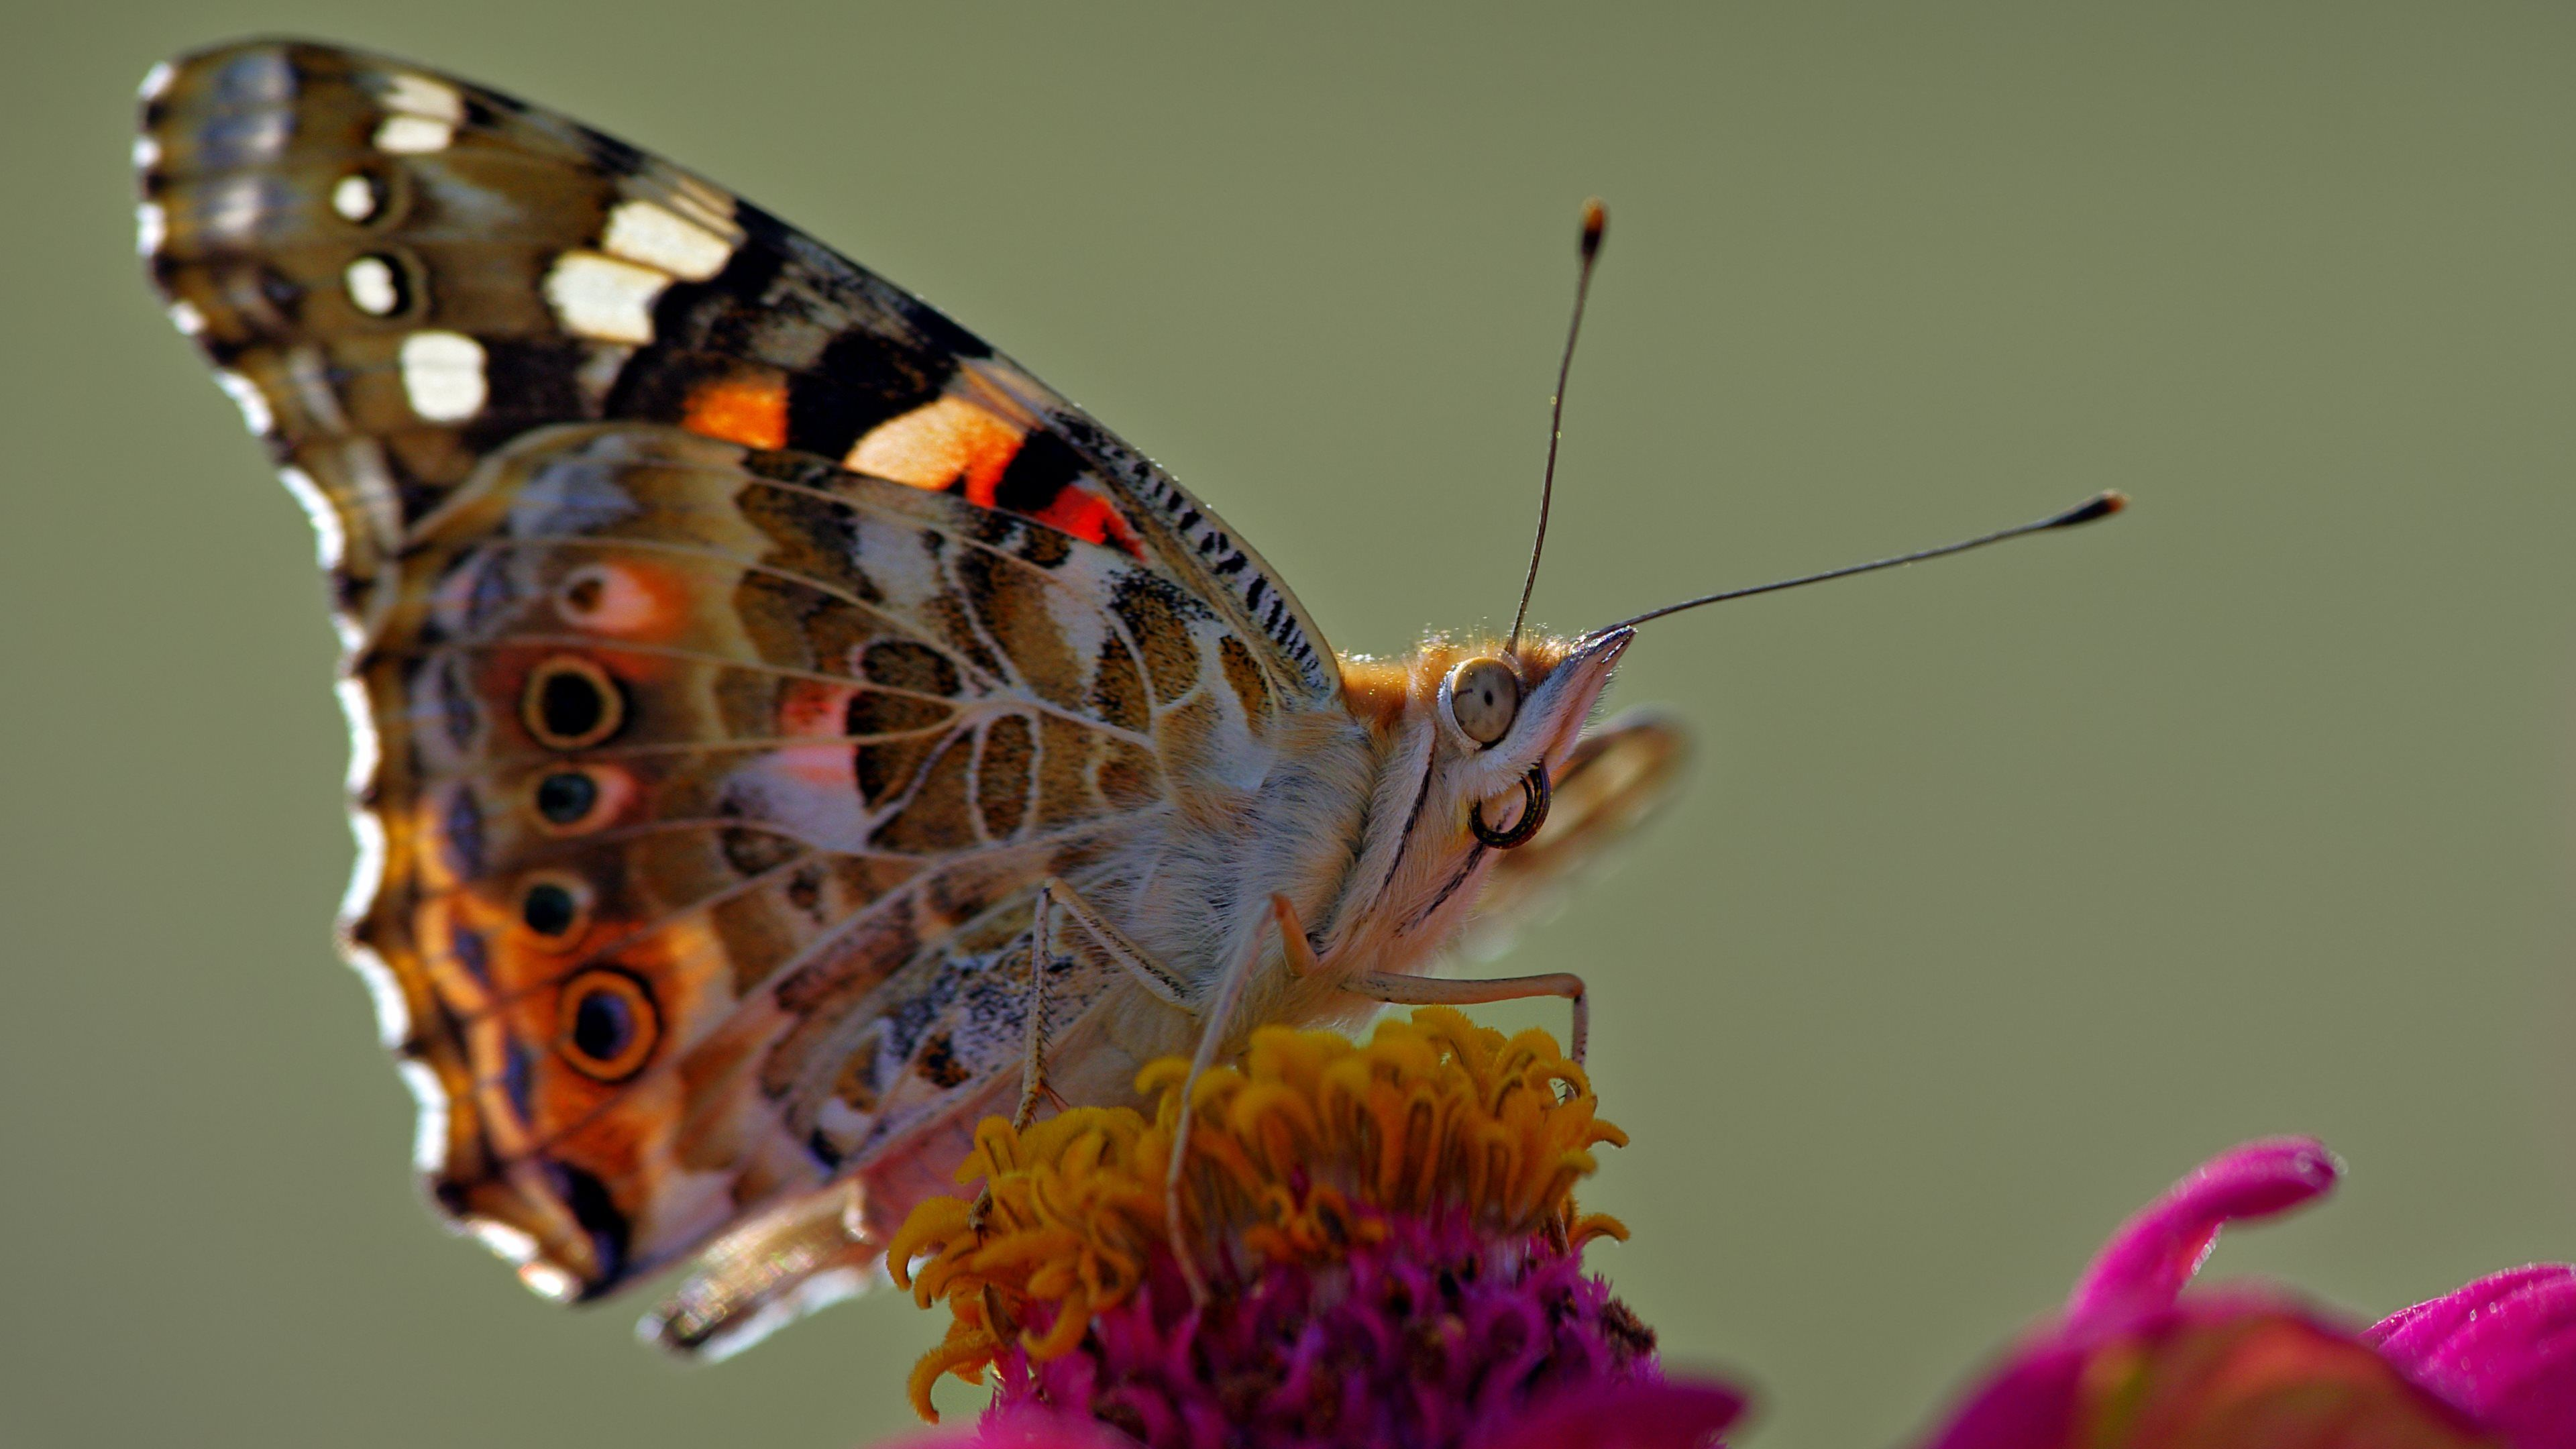 animal - butterfly - nature - hd - color - ultra hd - 4k wallpaper